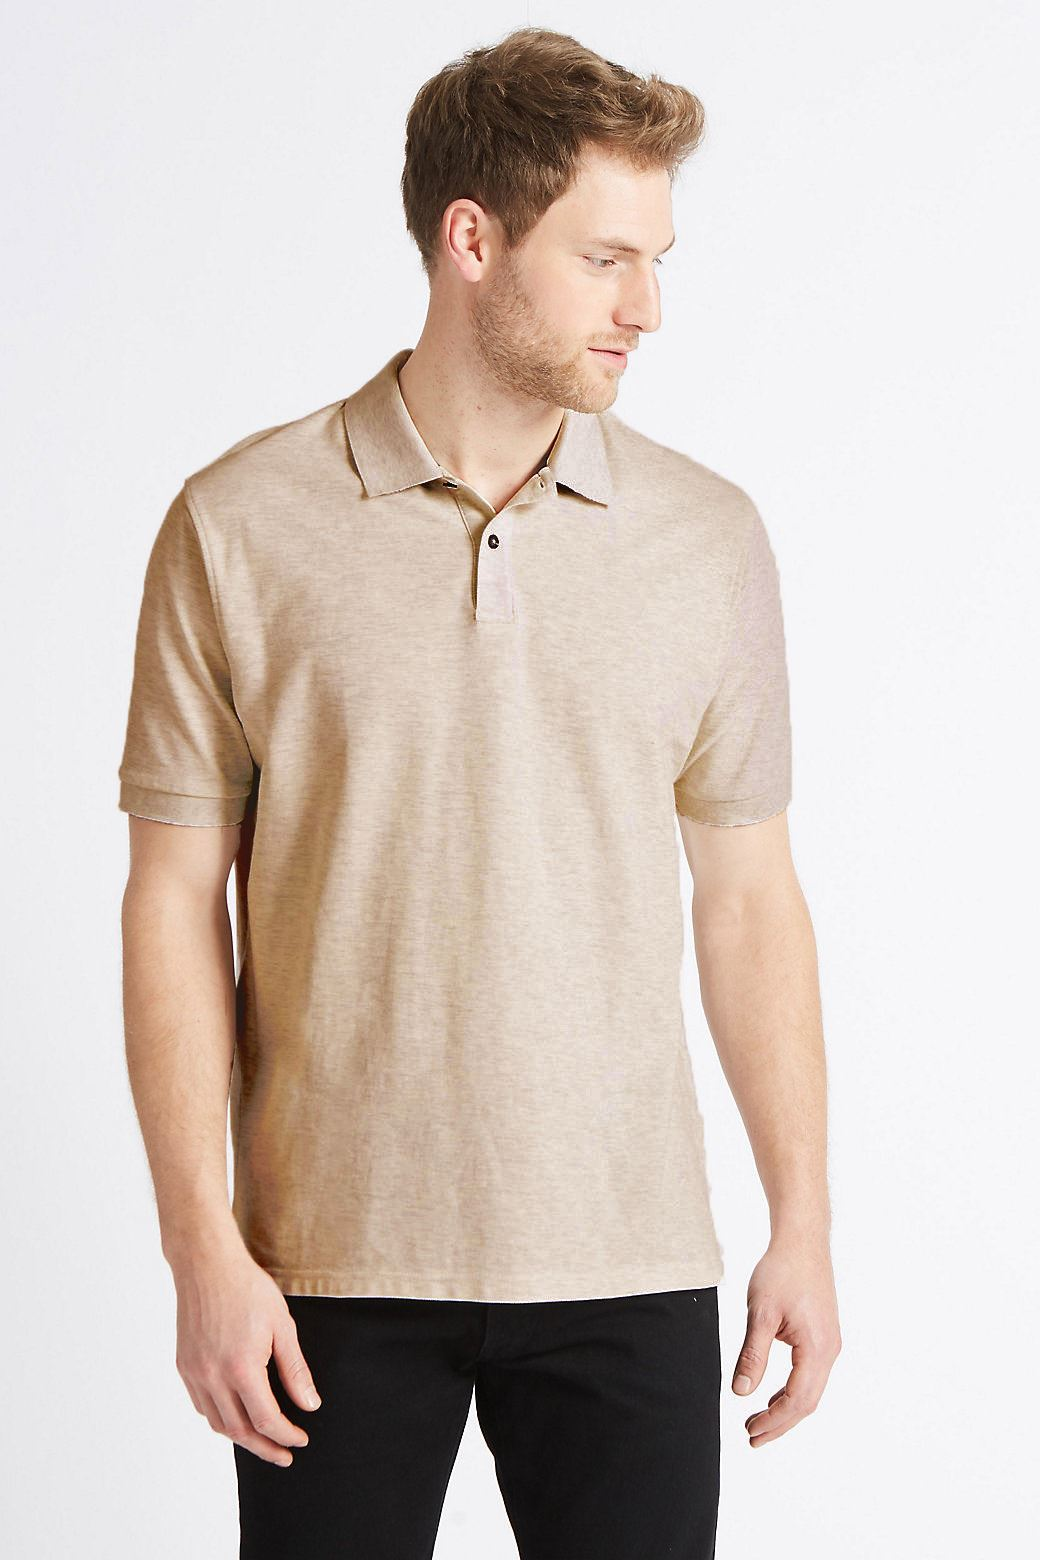 Marks-amp-Spencer-Mens-Cotton-Pique-Polo-Shirt-Extra-Large-Sizes thumbnail 5